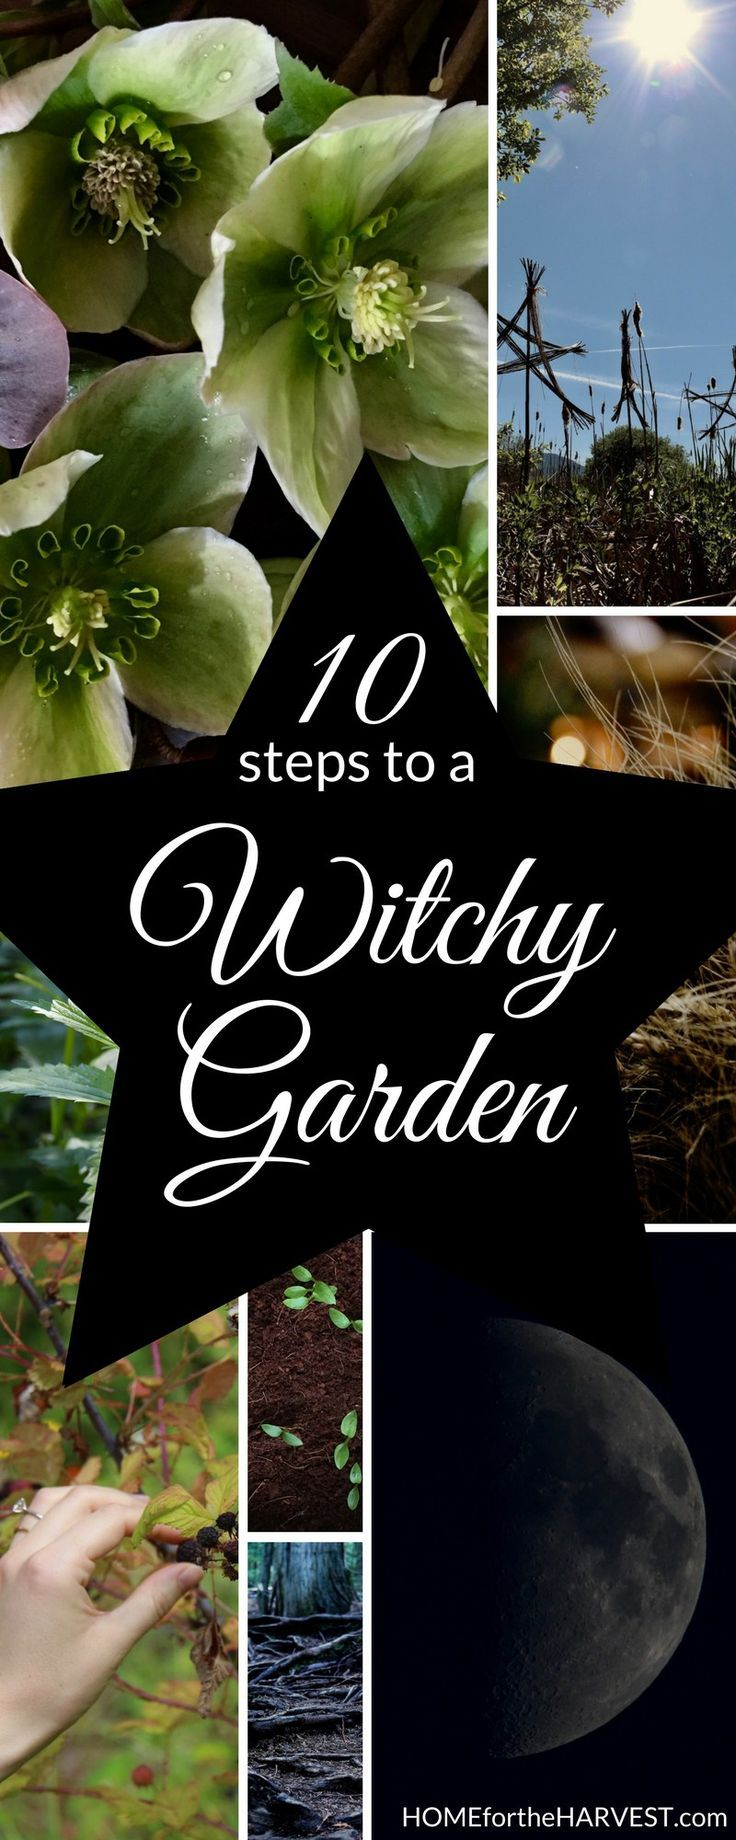 How to Create a Witchy Garden - Grow your own witch's garden by the moonlight with herbs and other magical plants | Home for the Harvest